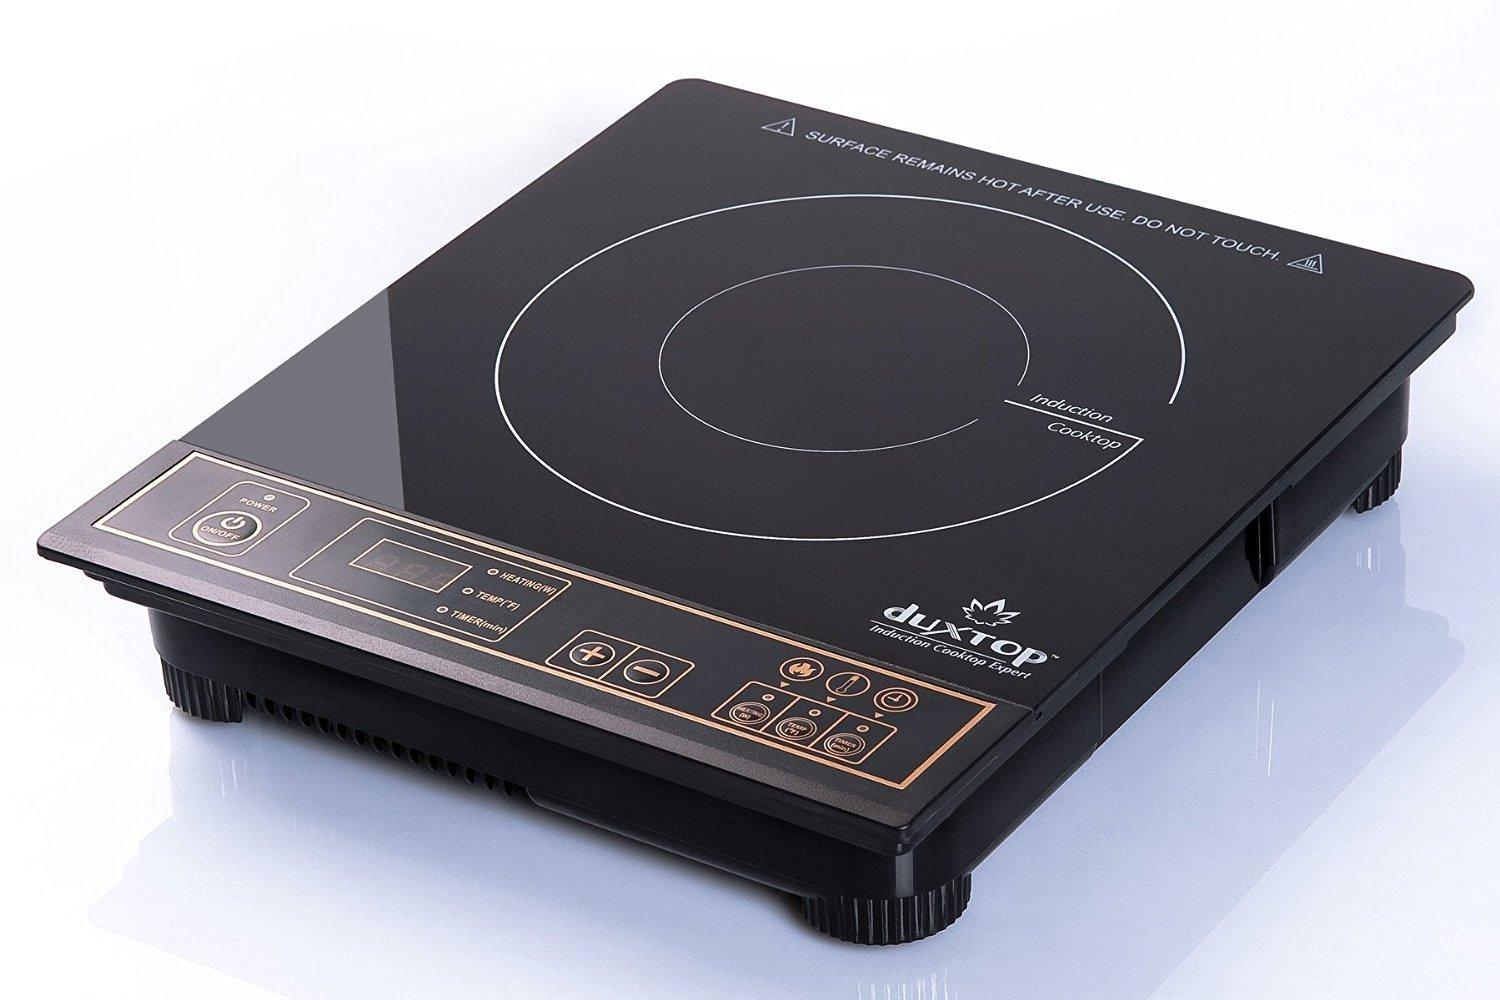 secura 8100mc 1800w portable induction cooktop. Black Bedroom Furniture Sets. Home Design Ideas